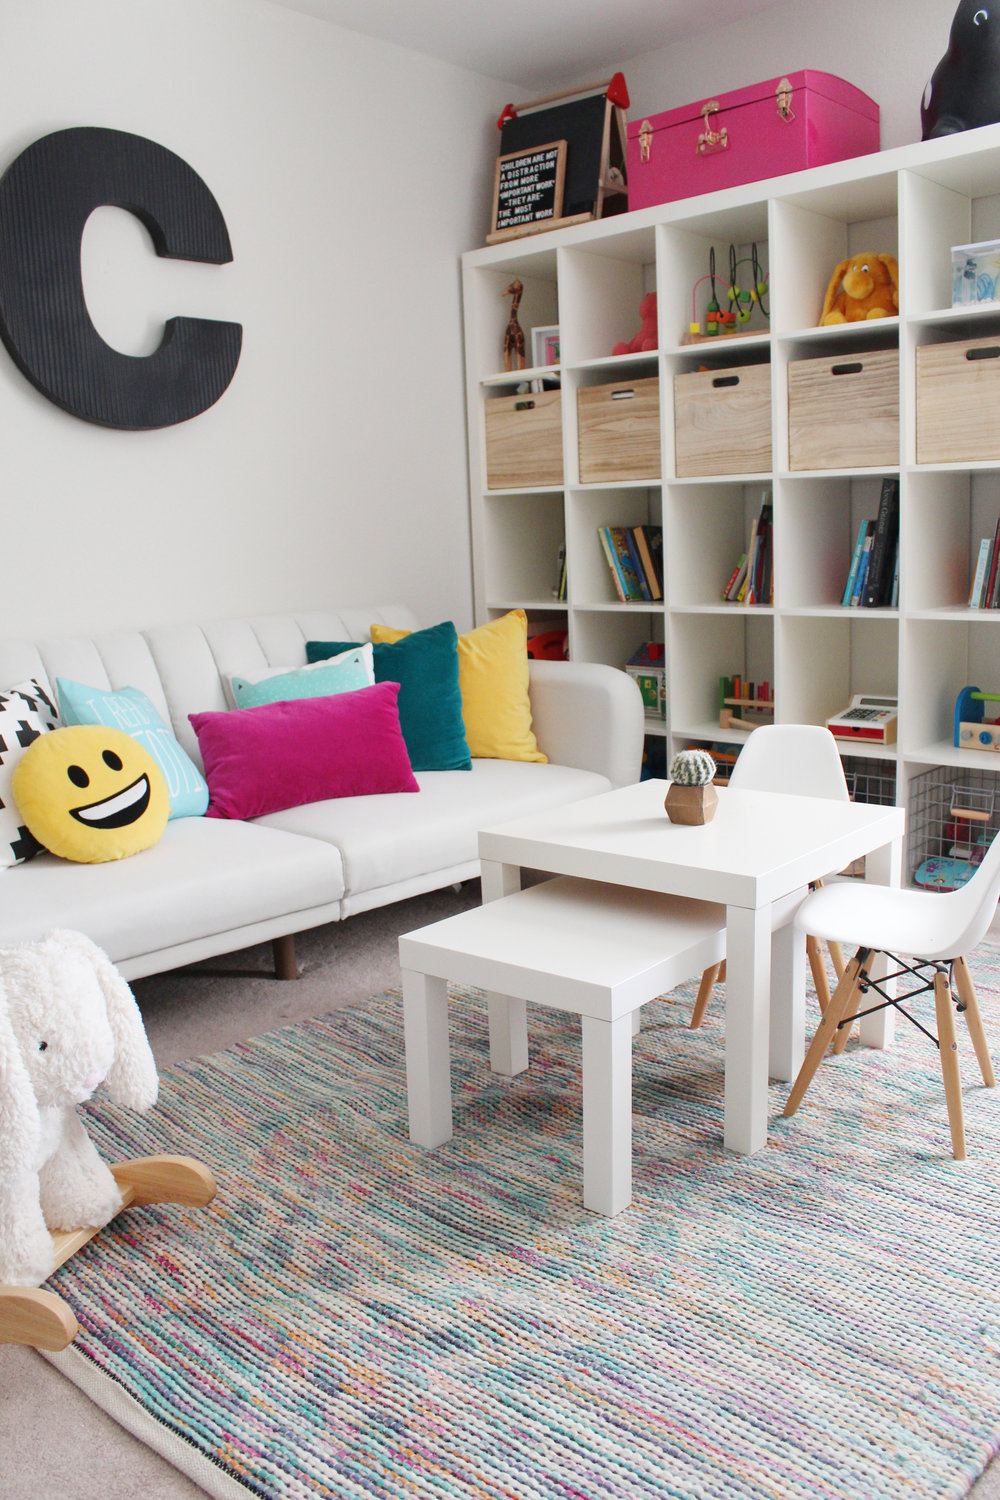 Cavie House Playroom 7.jpg